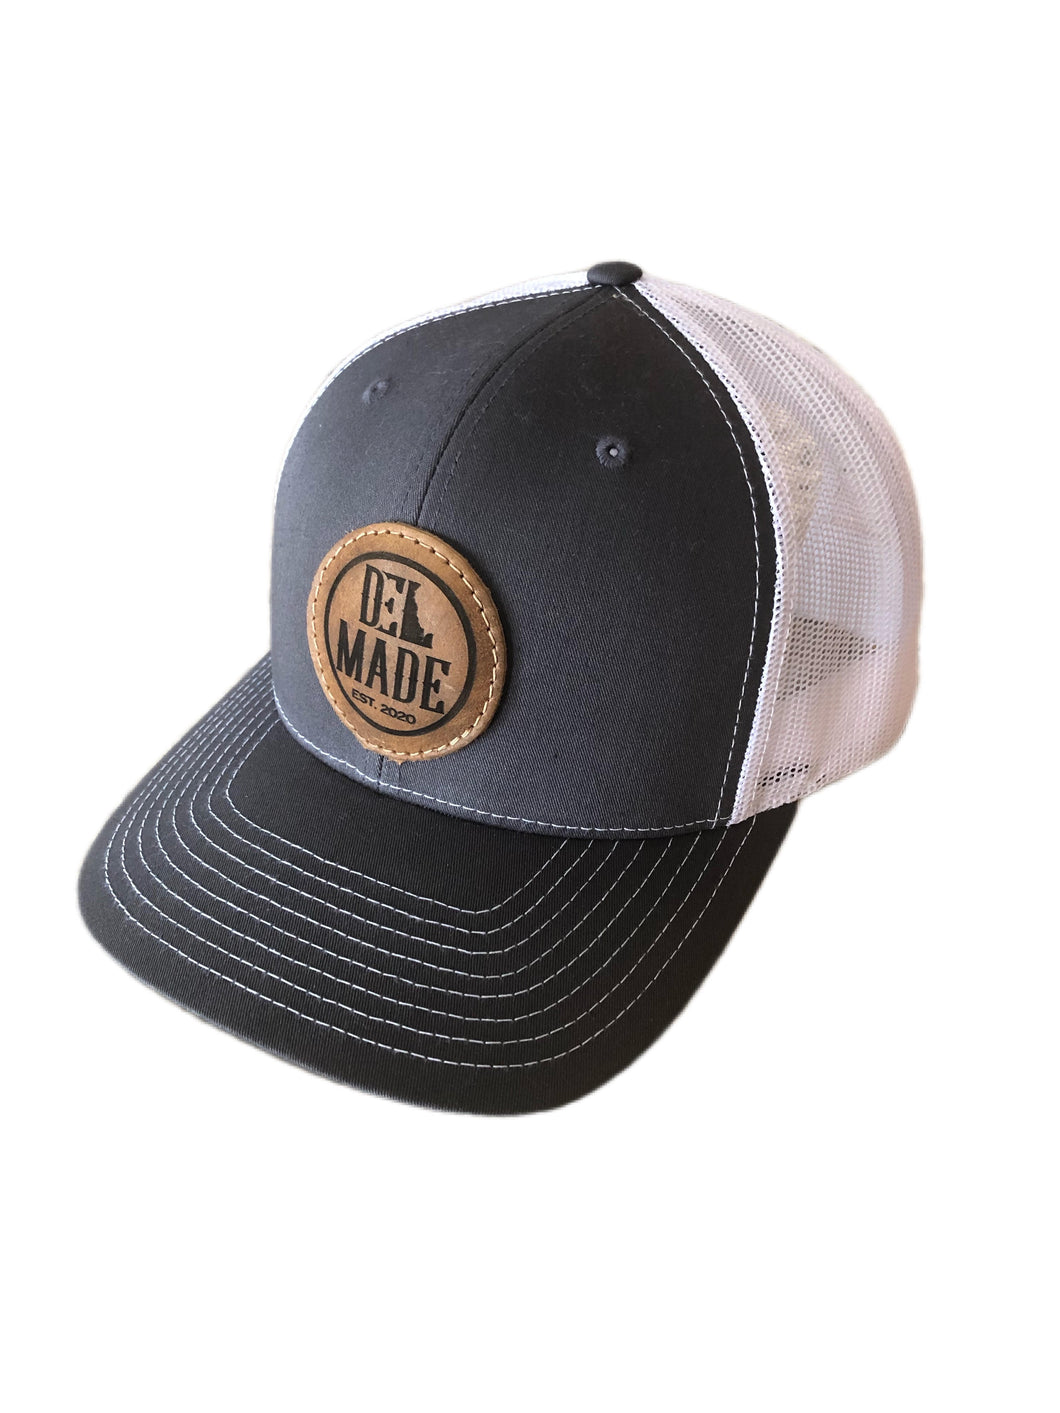 DEL Made Leather Patch Snapback